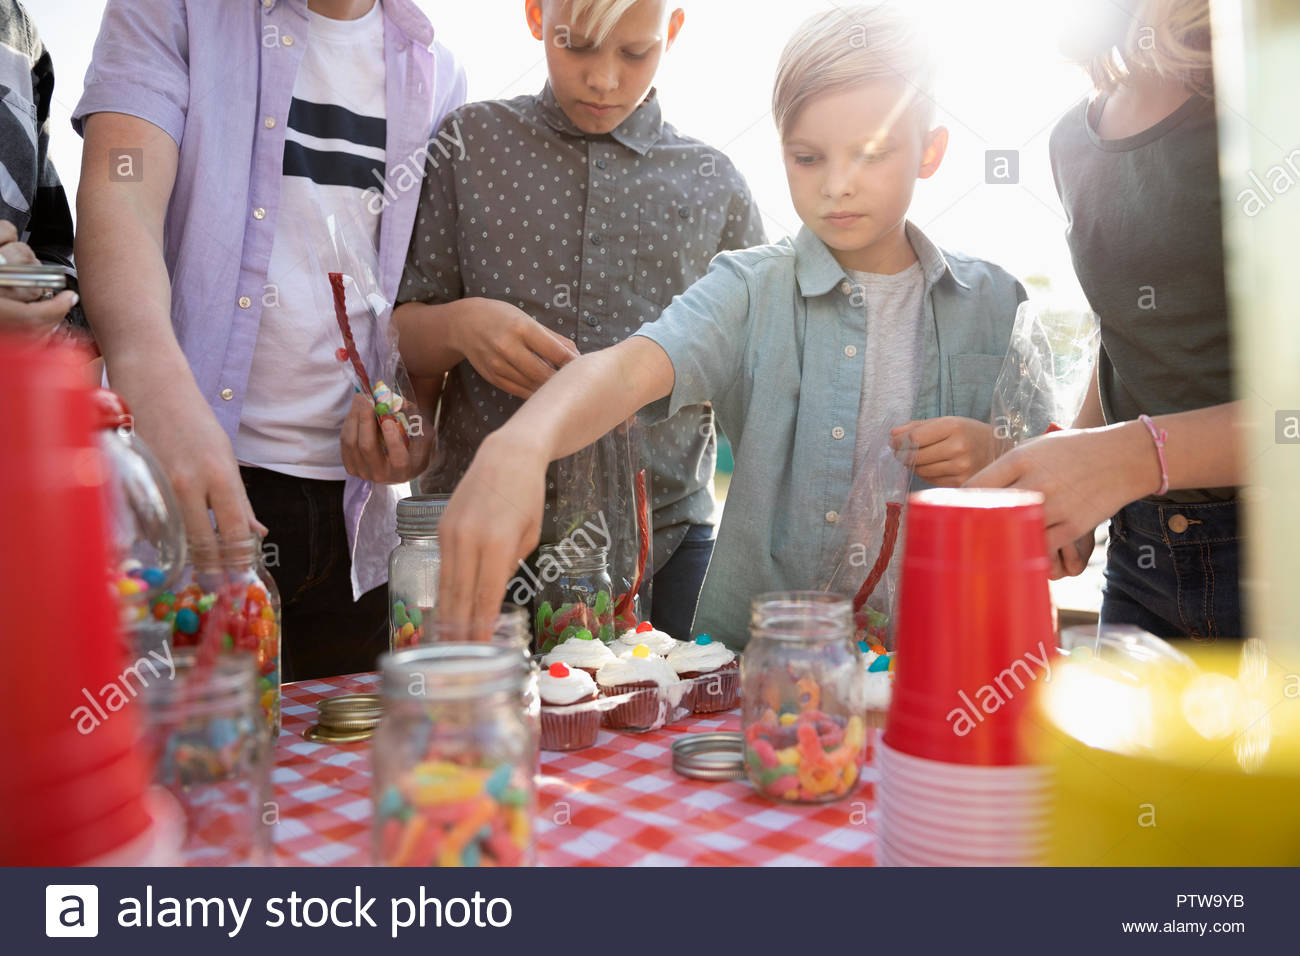 Family at carnival sweets booth - Stock Image